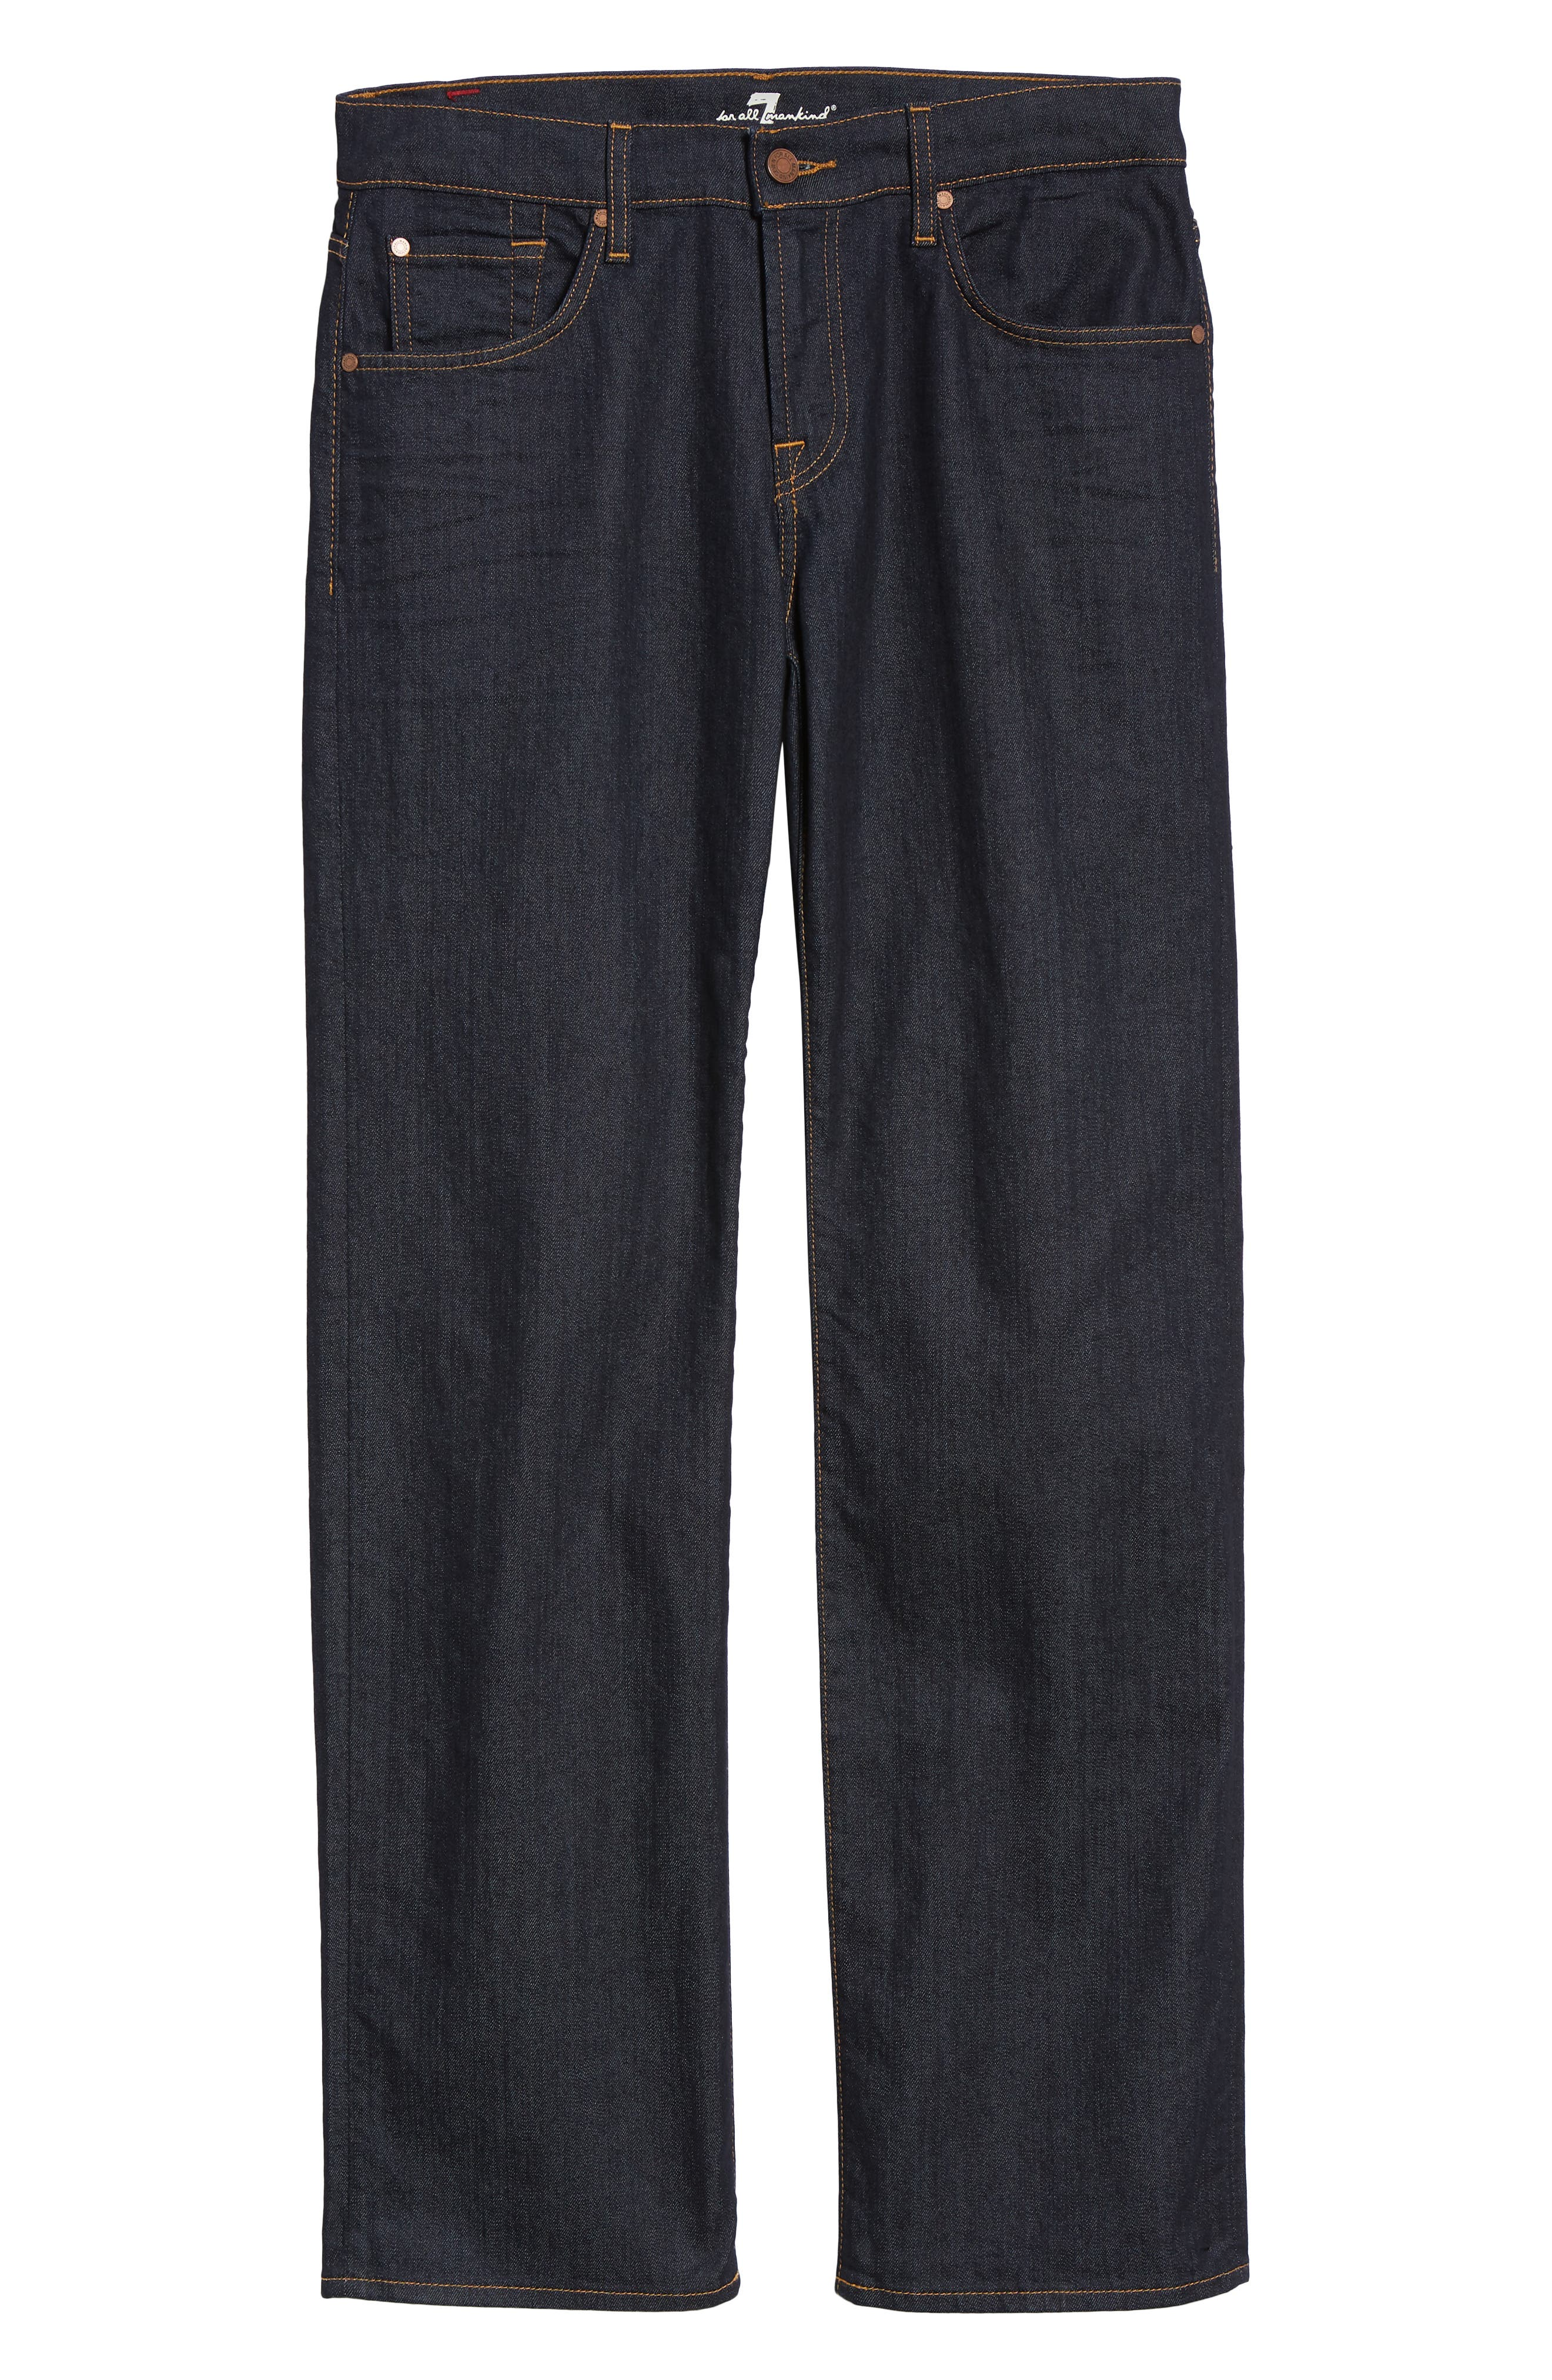 Austyn Airweft Relaxed Straight Leg Jeans,                             Alternate thumbnail 6, color,                             CAVEAT